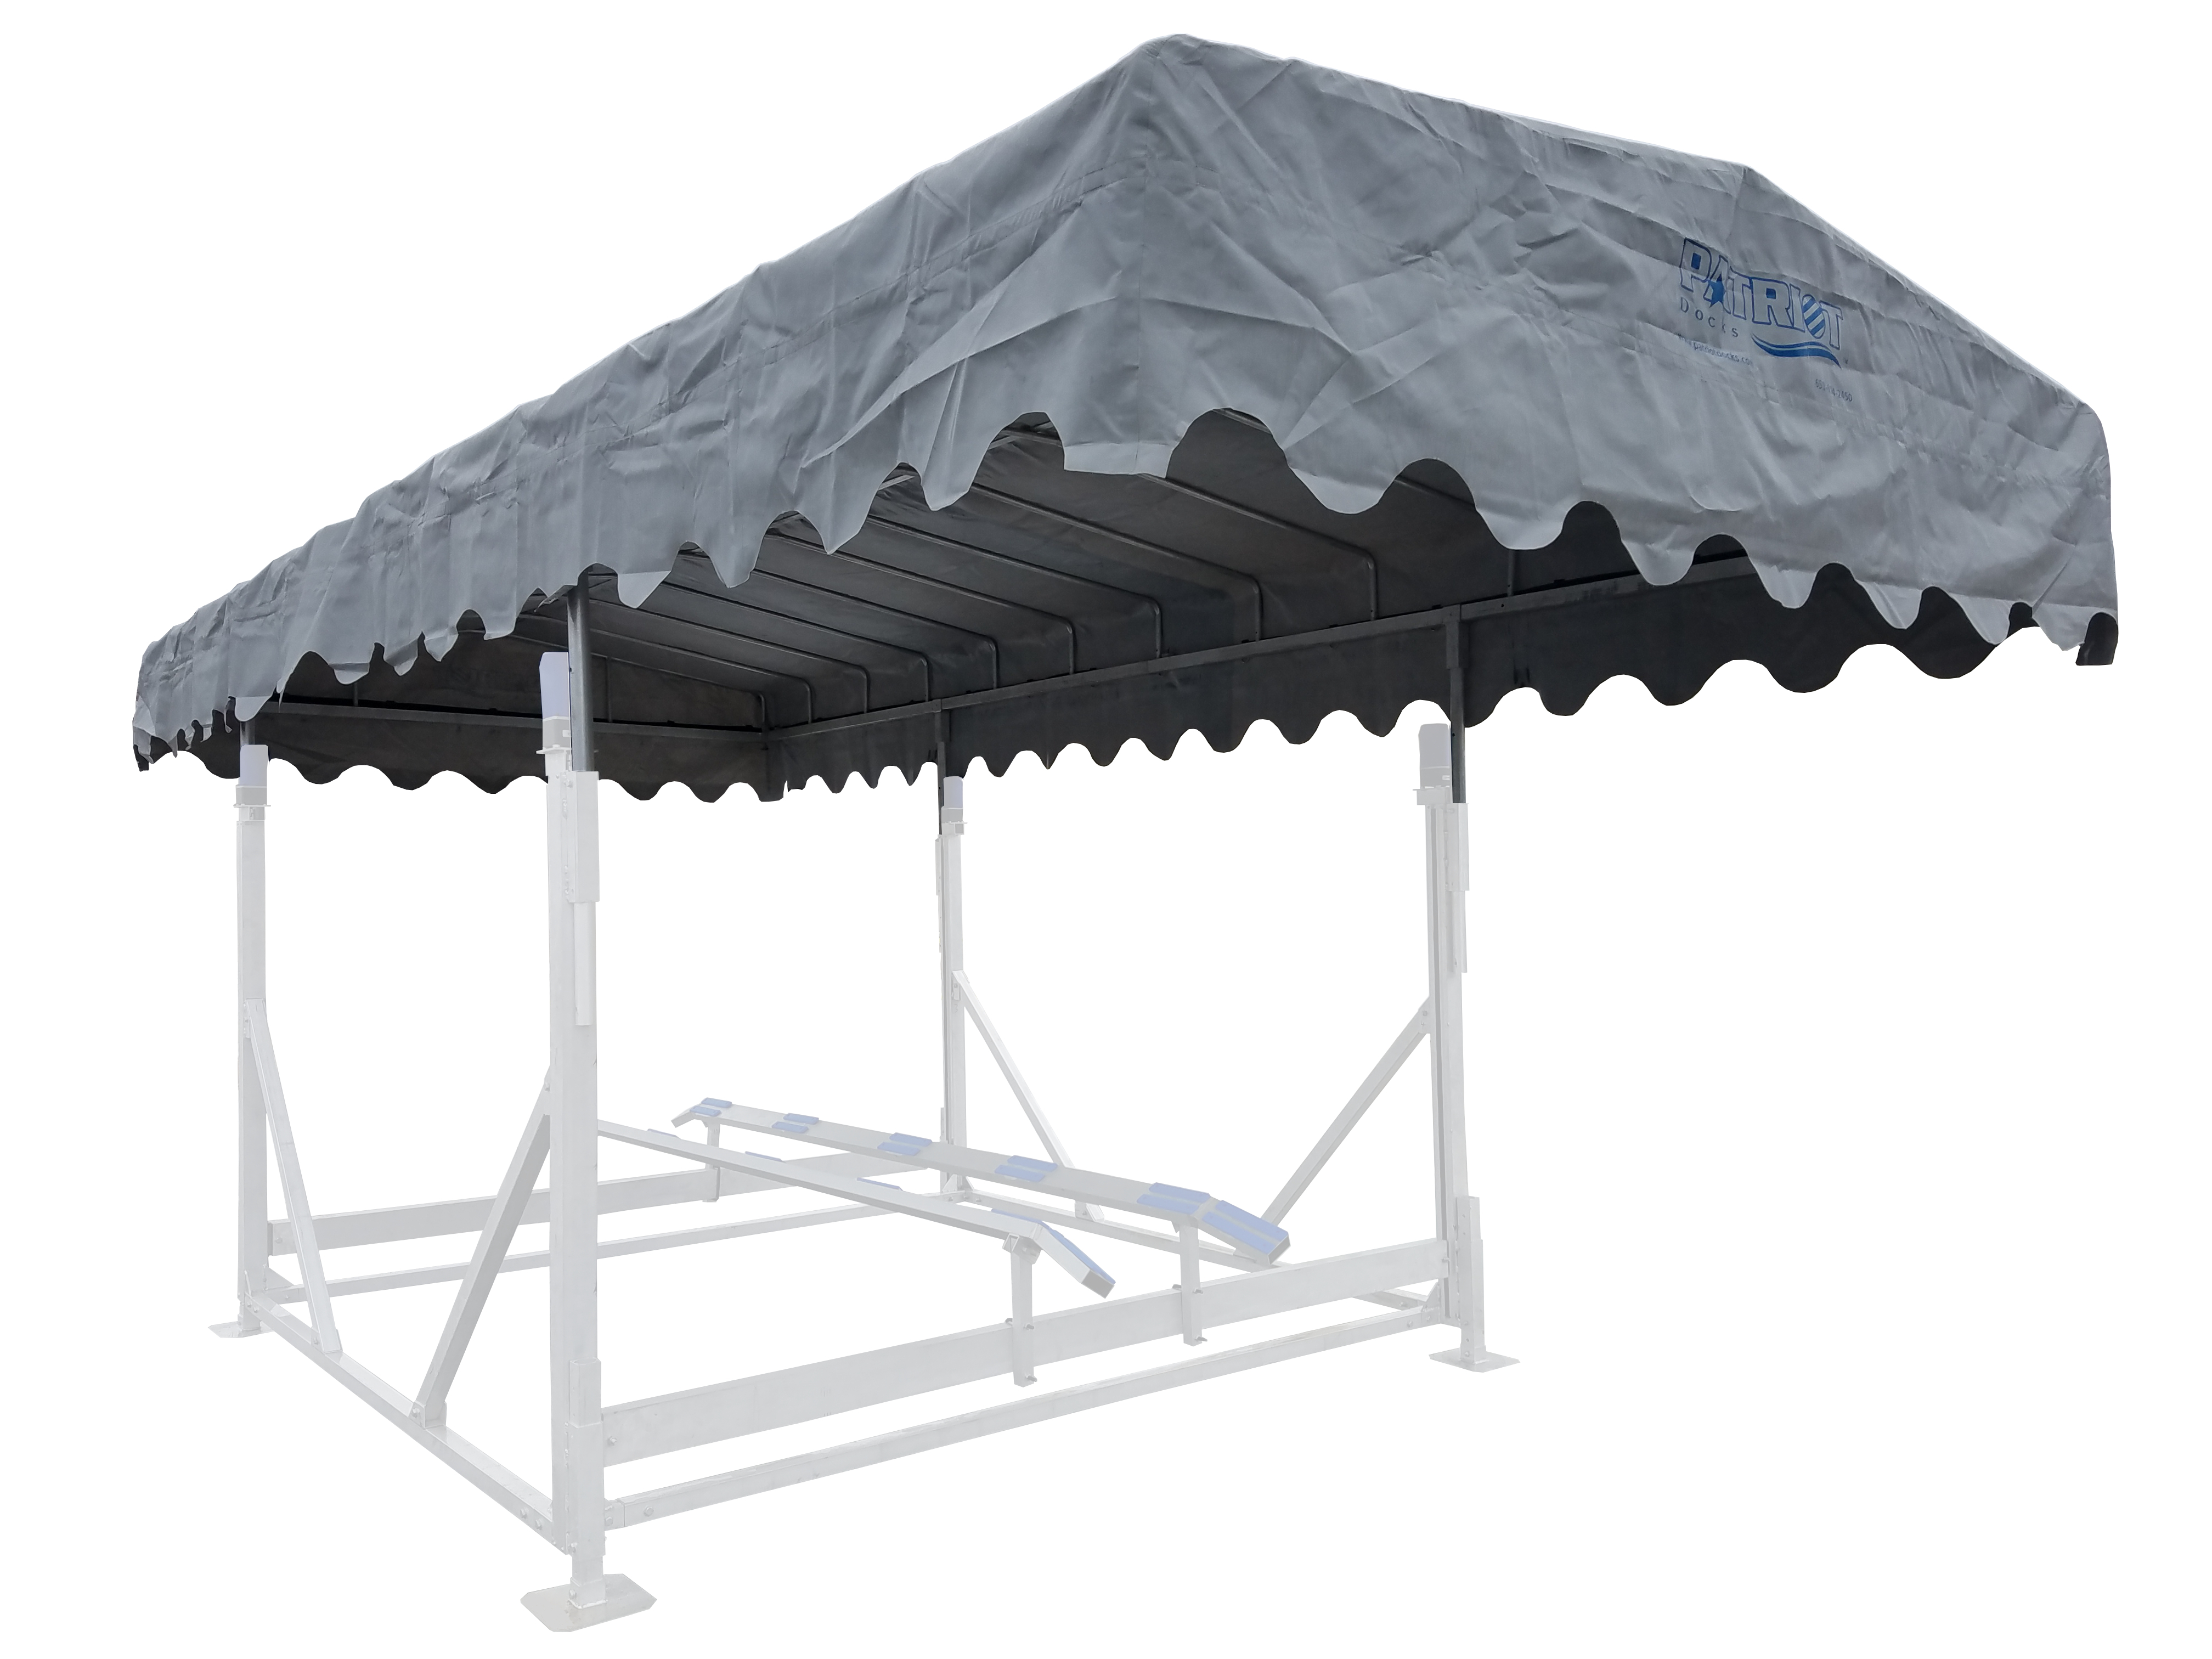 Marine Canopy Covers